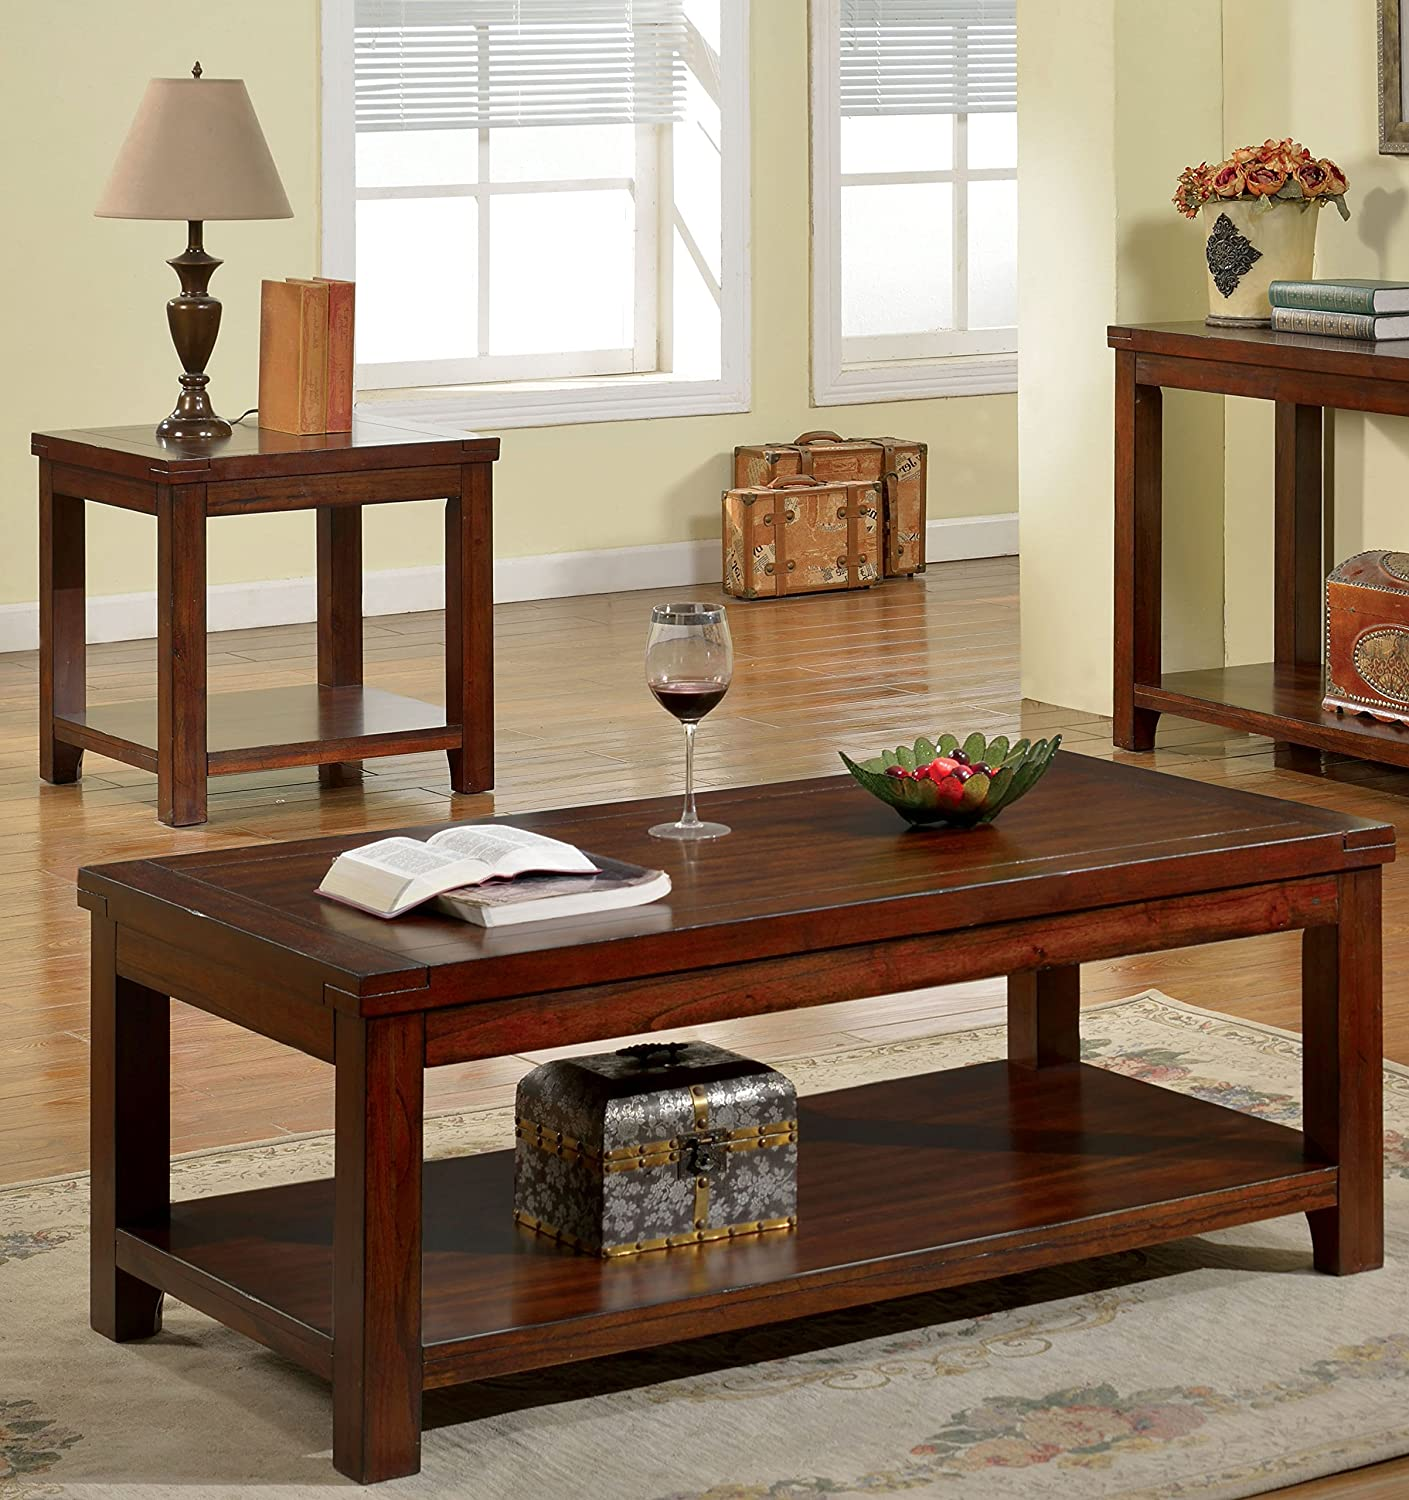 Furniture of America Torrence 2-Piece Transitional Accent Tables Set, Dark Cherry